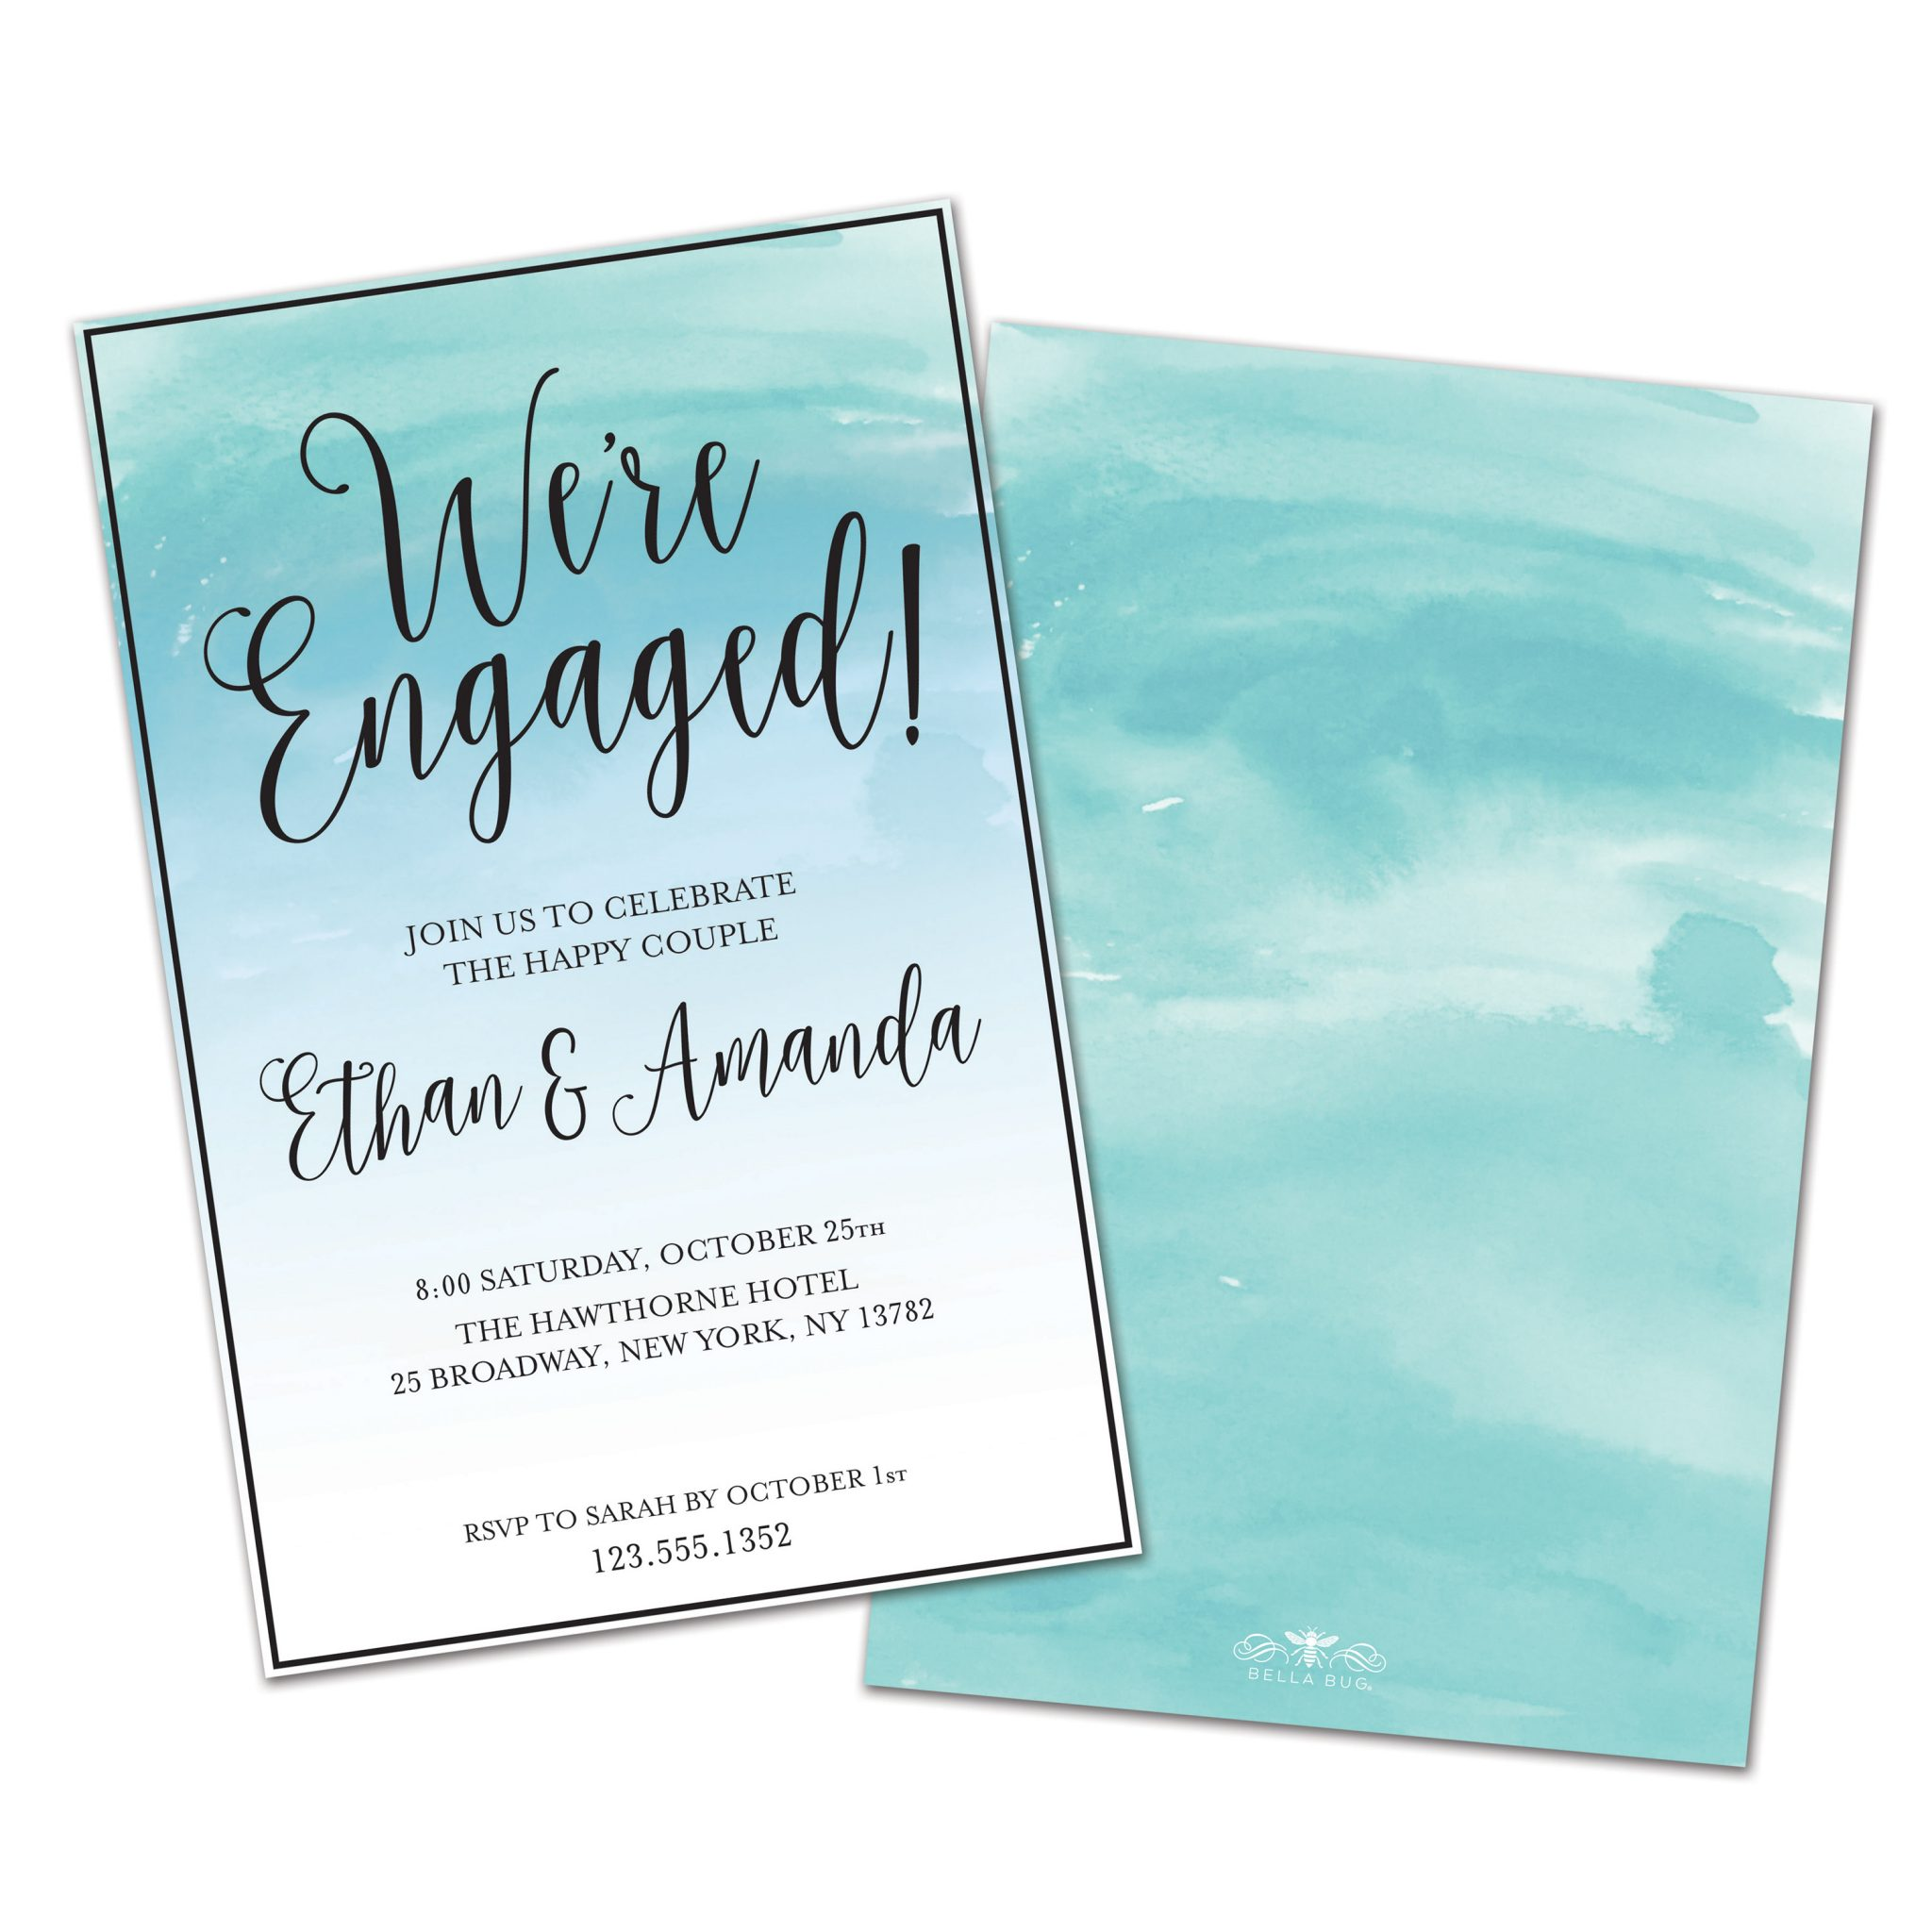 Frantic Watercolor Stripe Personalized Engagement Party Invitations Blue Green Watercolor Personalized Engagement Party Invitations Engagement Party Invitations Ideas Engagement Party Invitations Walm invitations Engagement Party Invitations